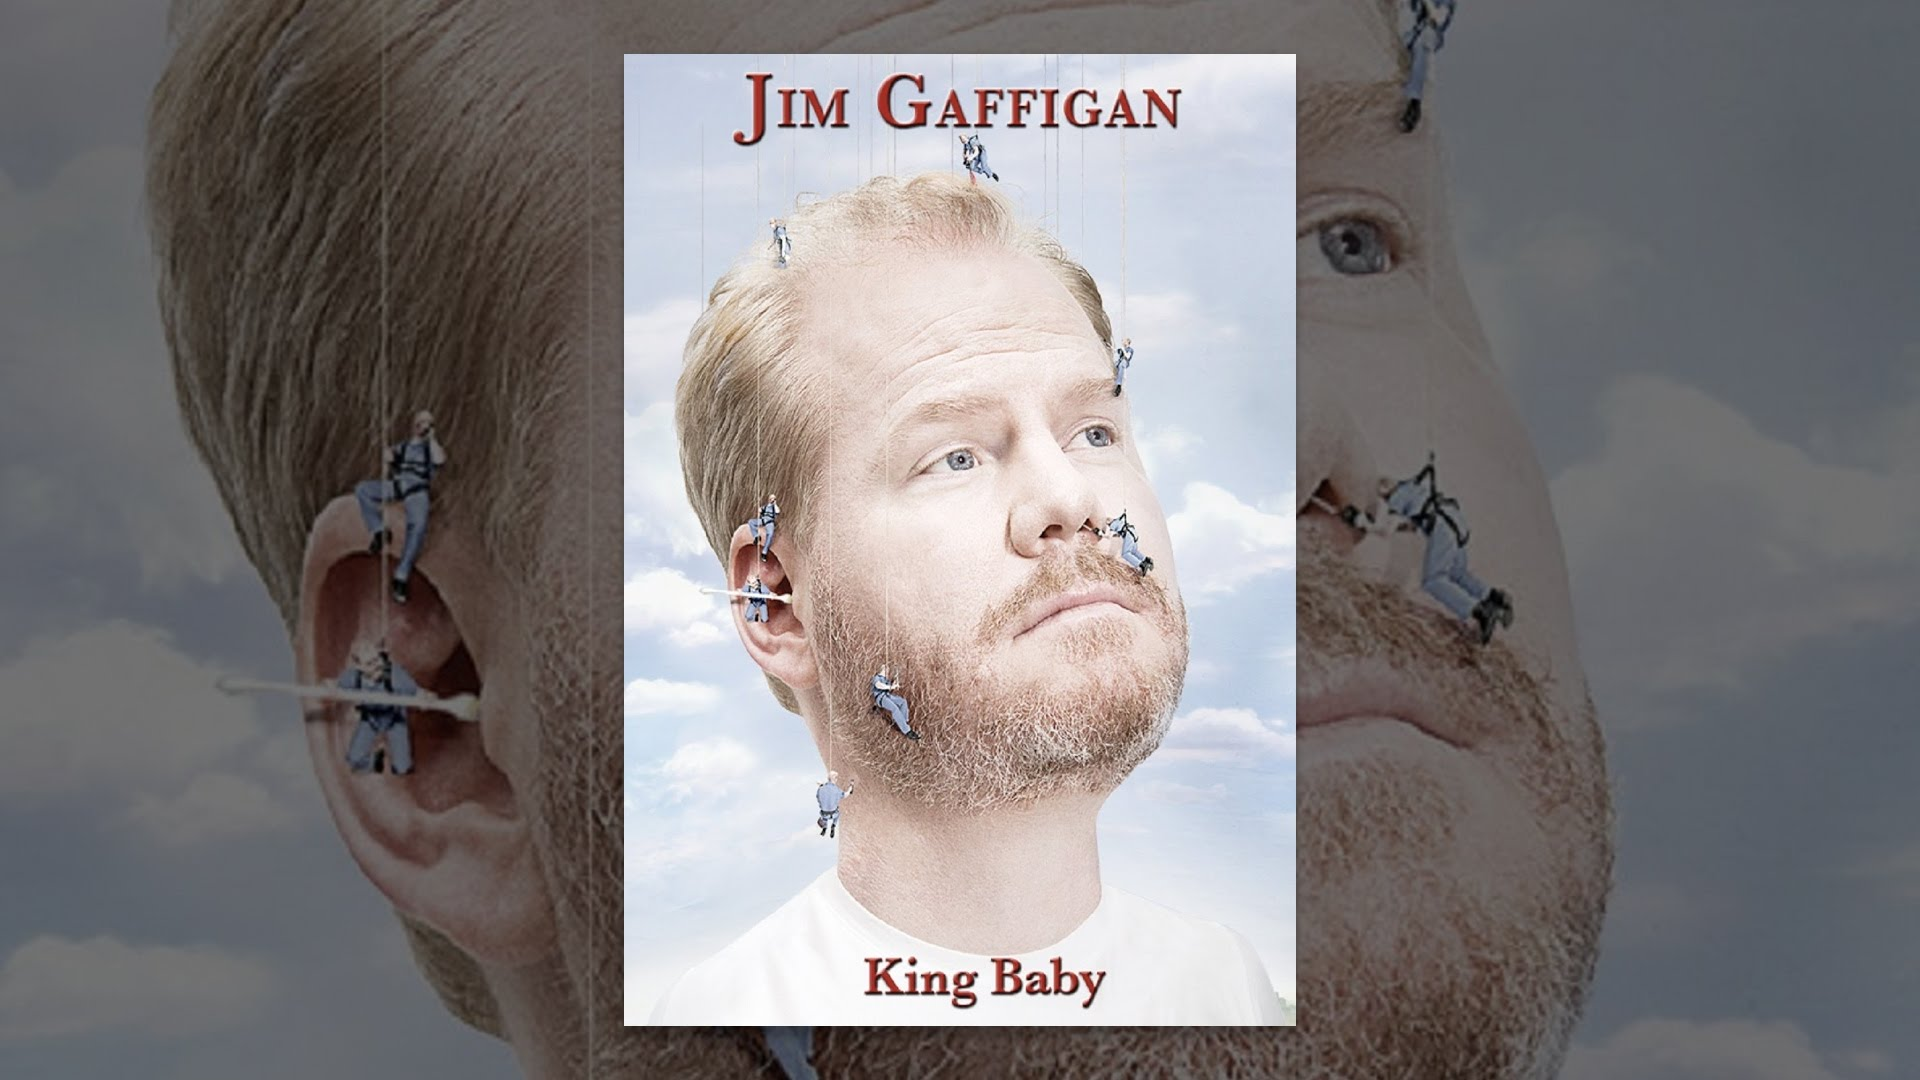 Jim Gaffigan King Baby Youtube